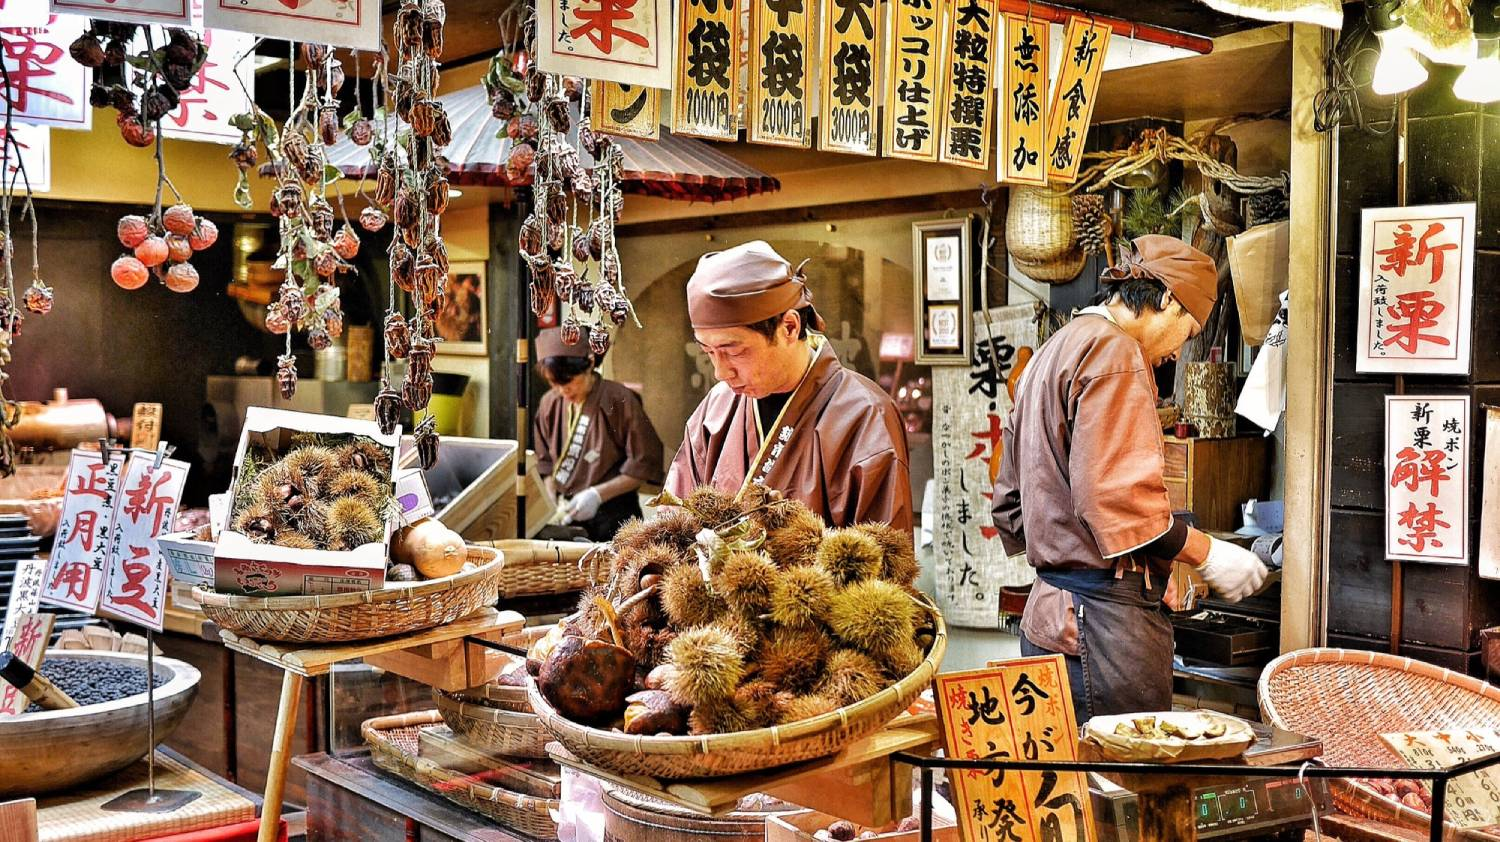 Nishiki Food Market - Things To Do In Kyoto